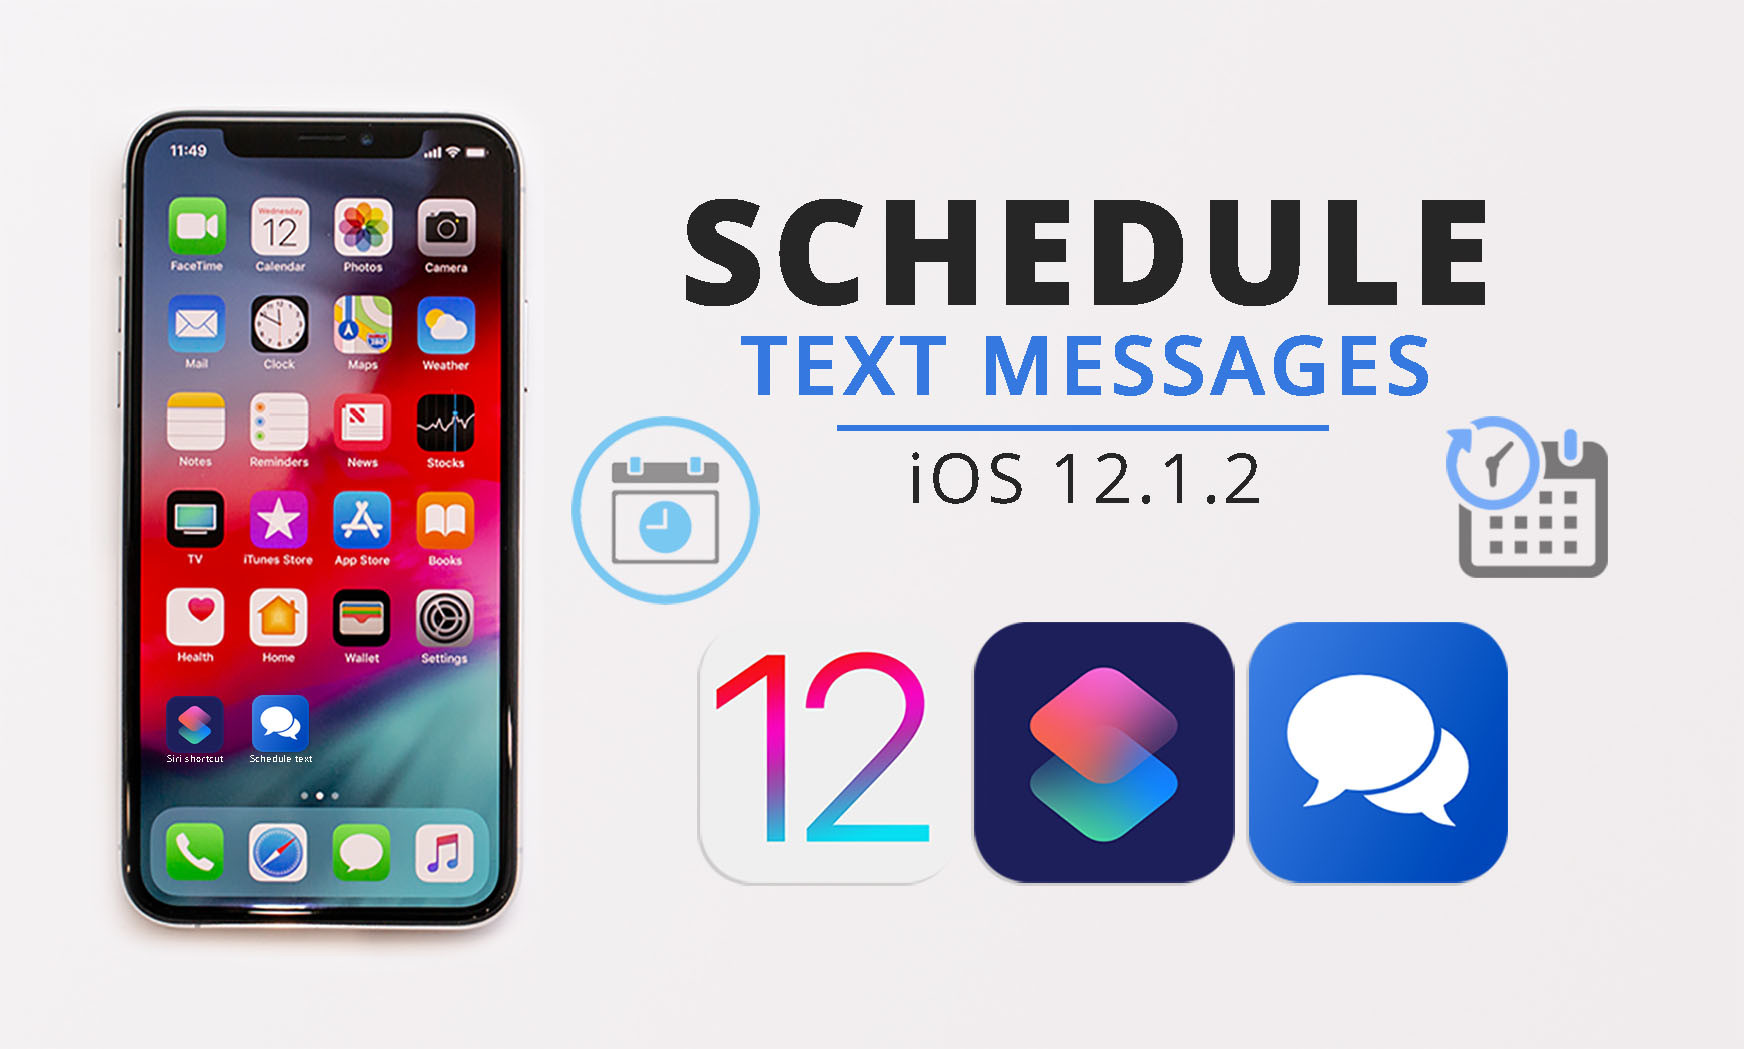 How to Schedule The Text Messages on iPhone (iOS 12.1.2)